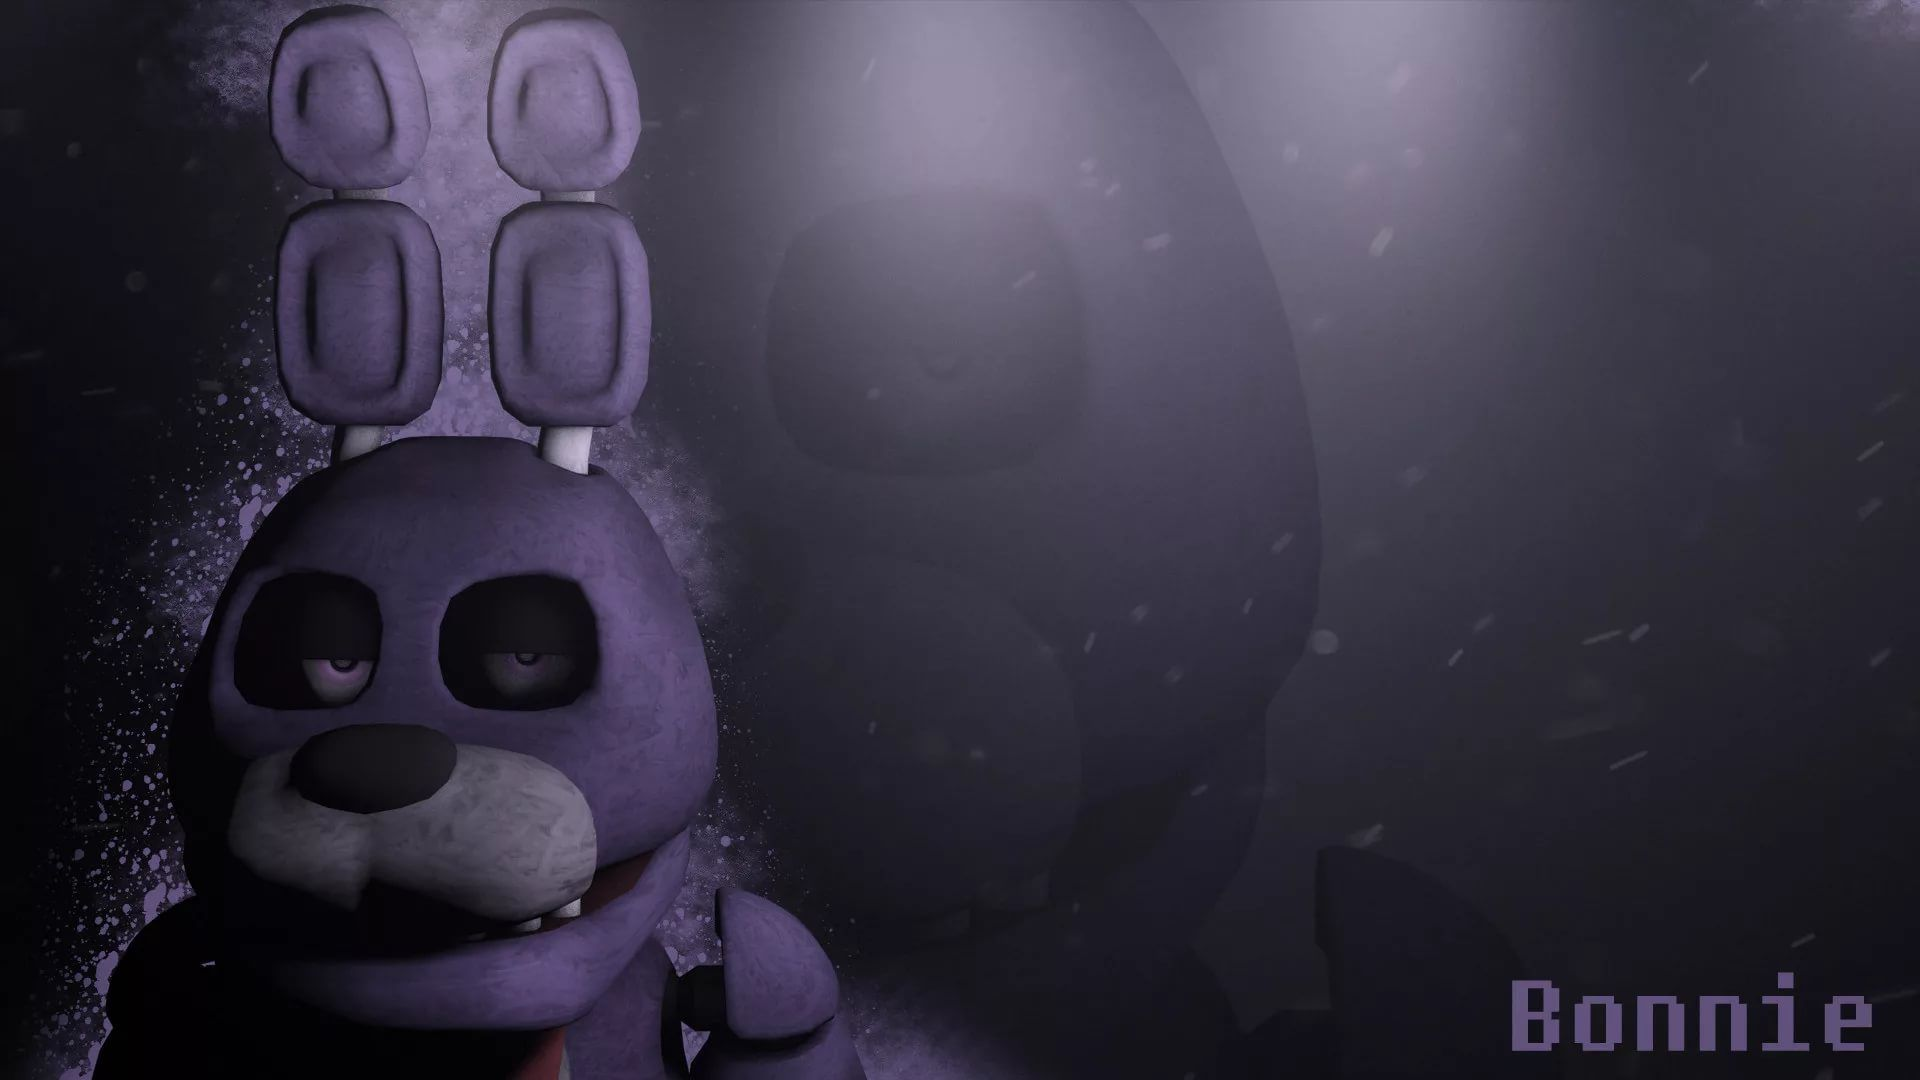 FNAF Bonnie free download wallpaper